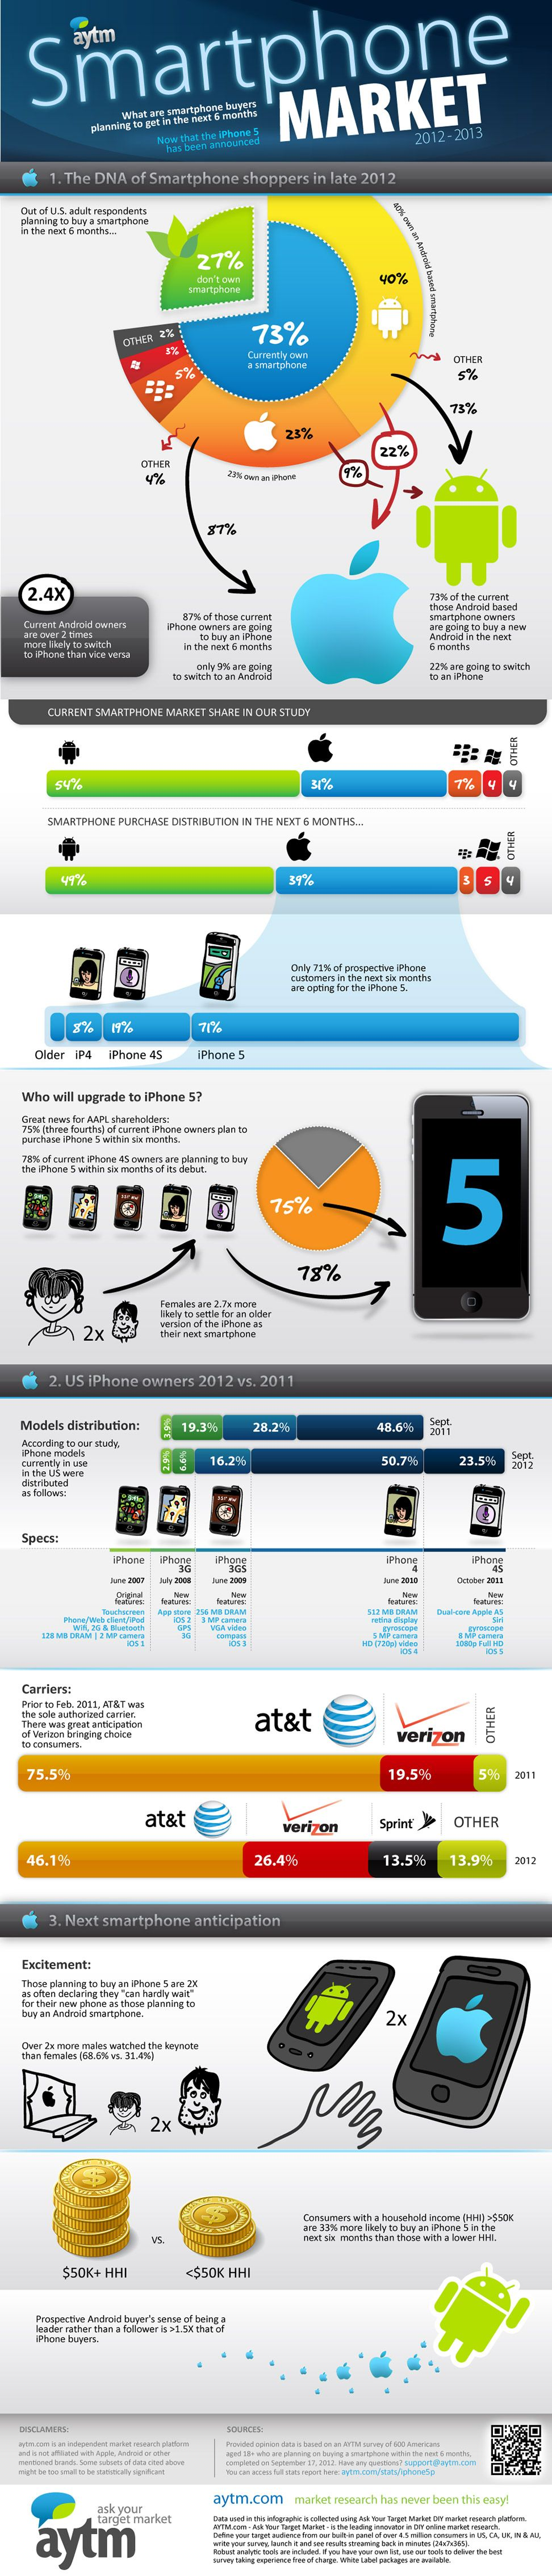 How the iPhone 5 Has Affected the Smartphone Market [INFOGRAPHIC] #iphone5